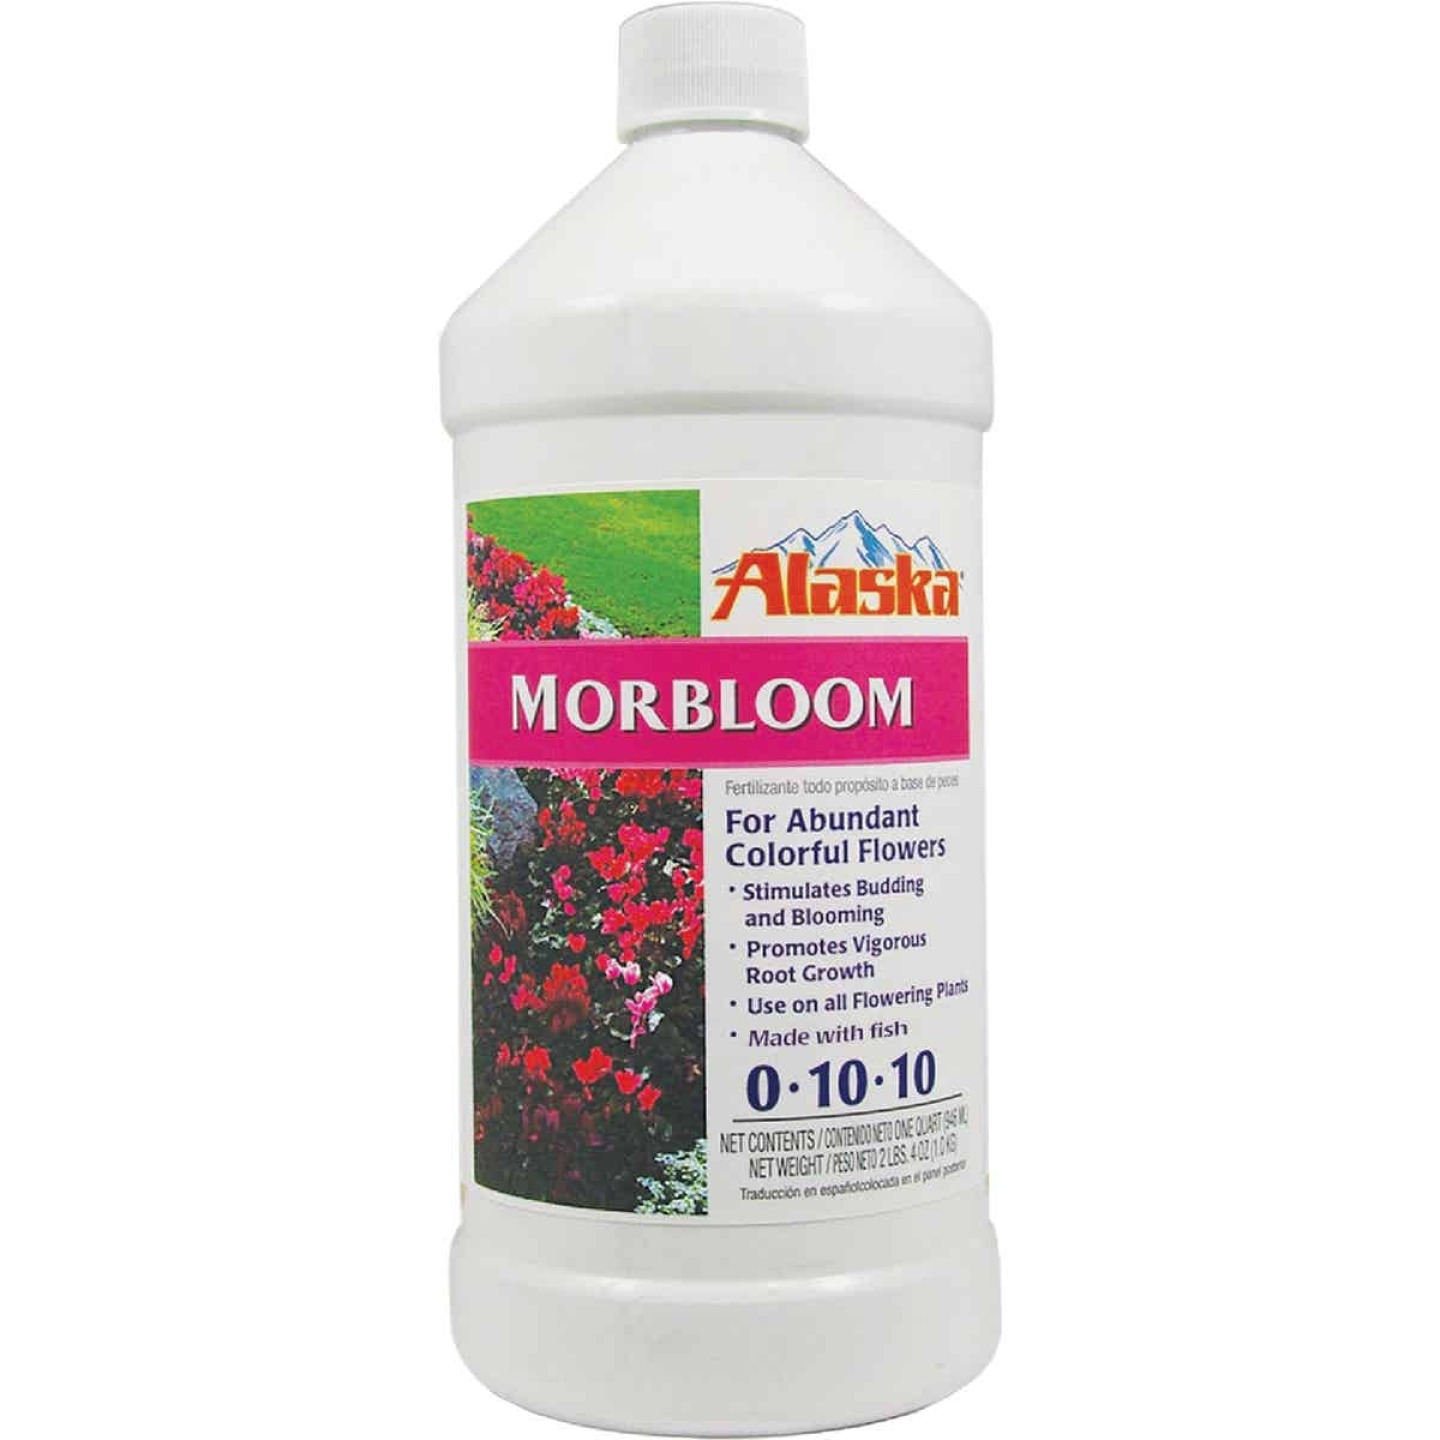 Alaska Morbloom 32 Oz. 0-10-10 Concentrated Liquid Plant Food Image 1